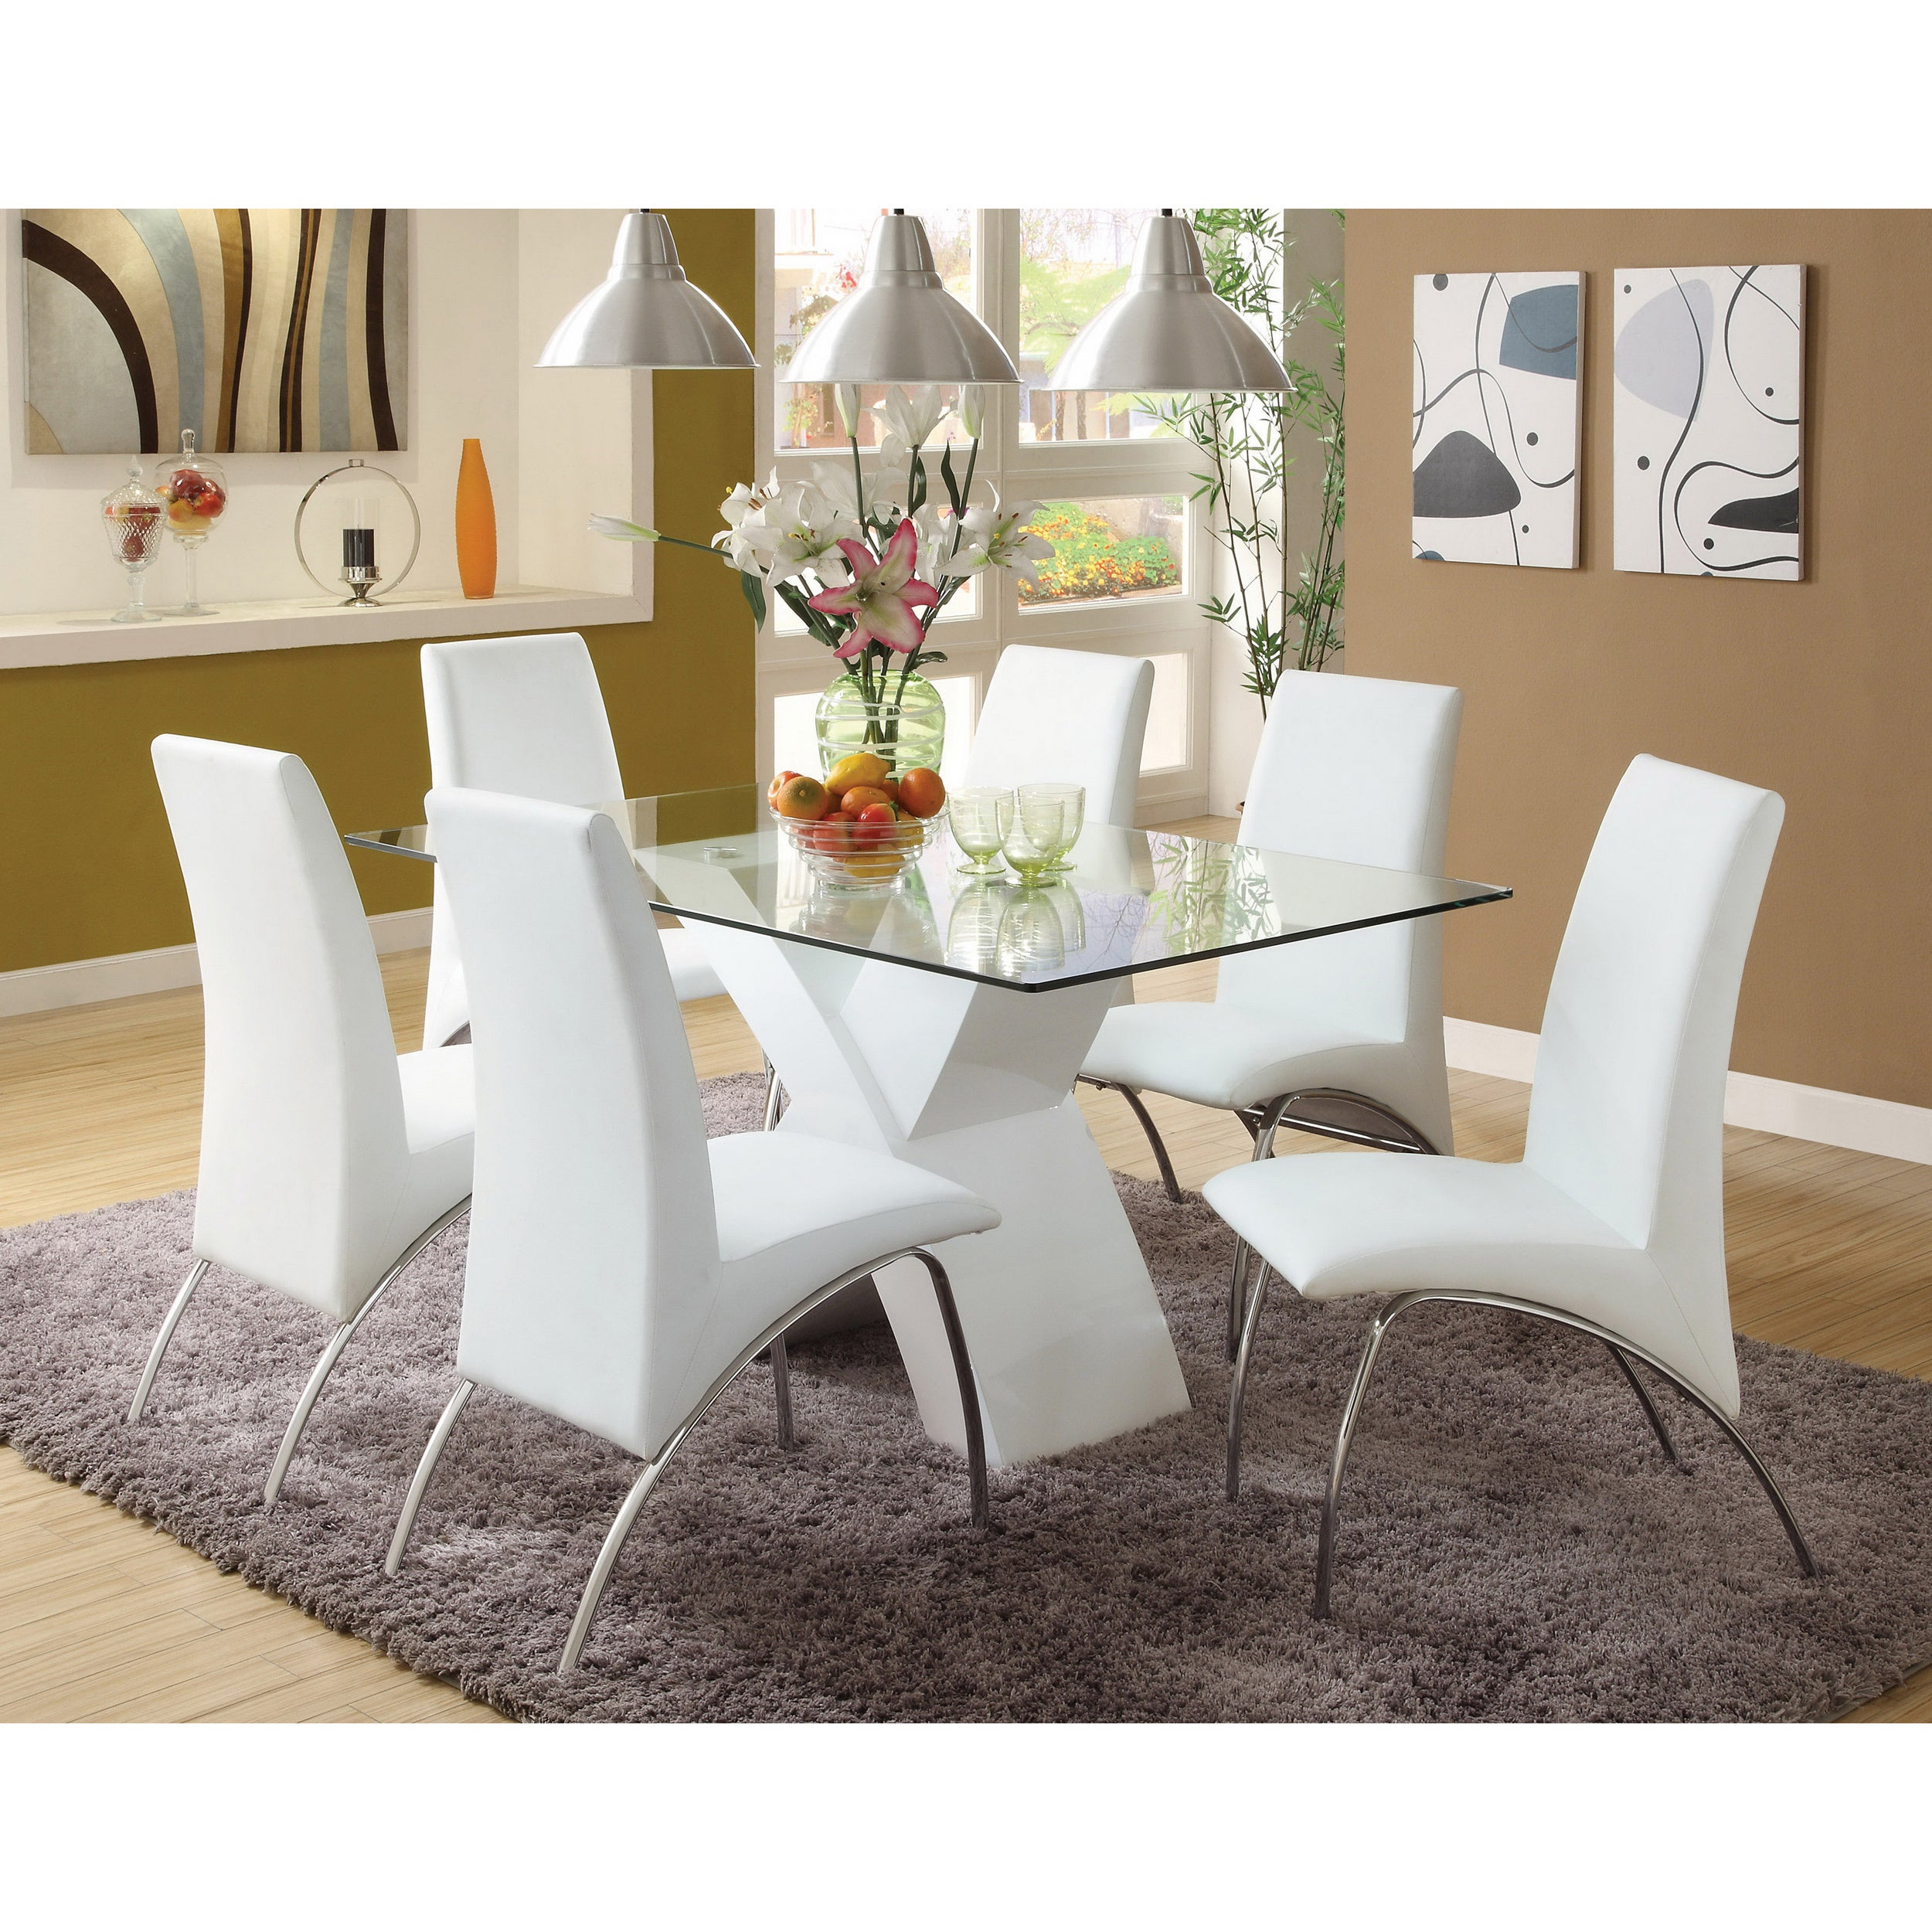 Furniture Of America Chambers 7 Piece Contemporary Glass Top Dining Set    Free Shipping Today   Overstock.com   14107082